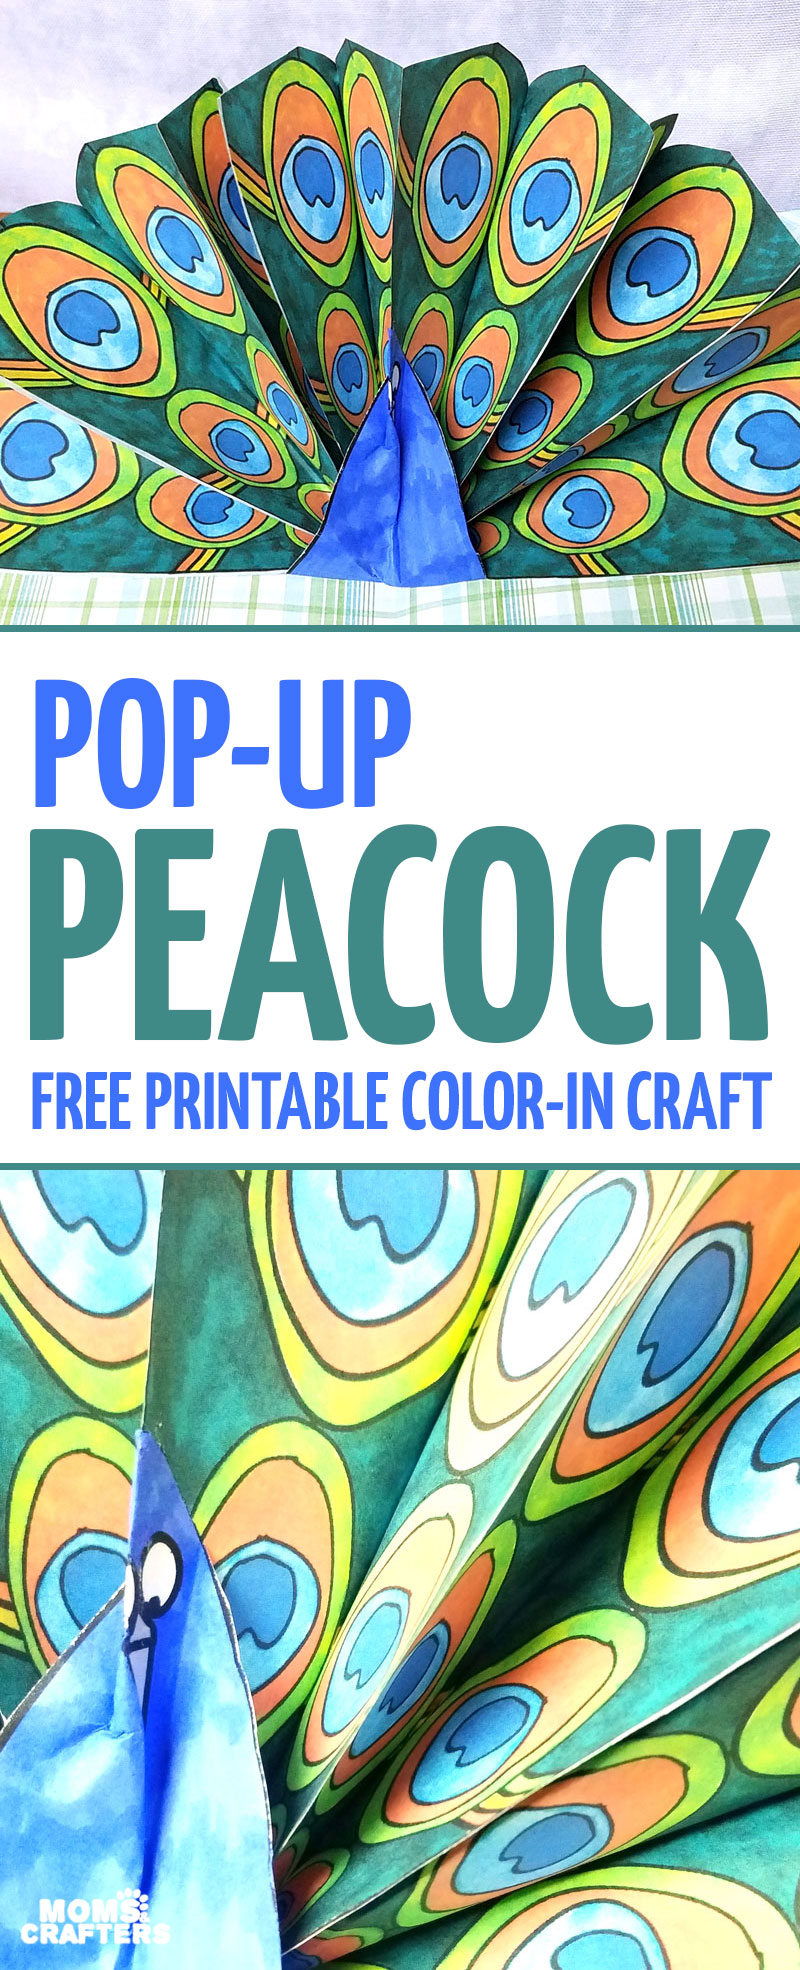 Peacock craft pop up paper peacock with free printable feathers make a pop up peacock craft these free printable color in peacock feathers can jeuxipadfo Choice Image